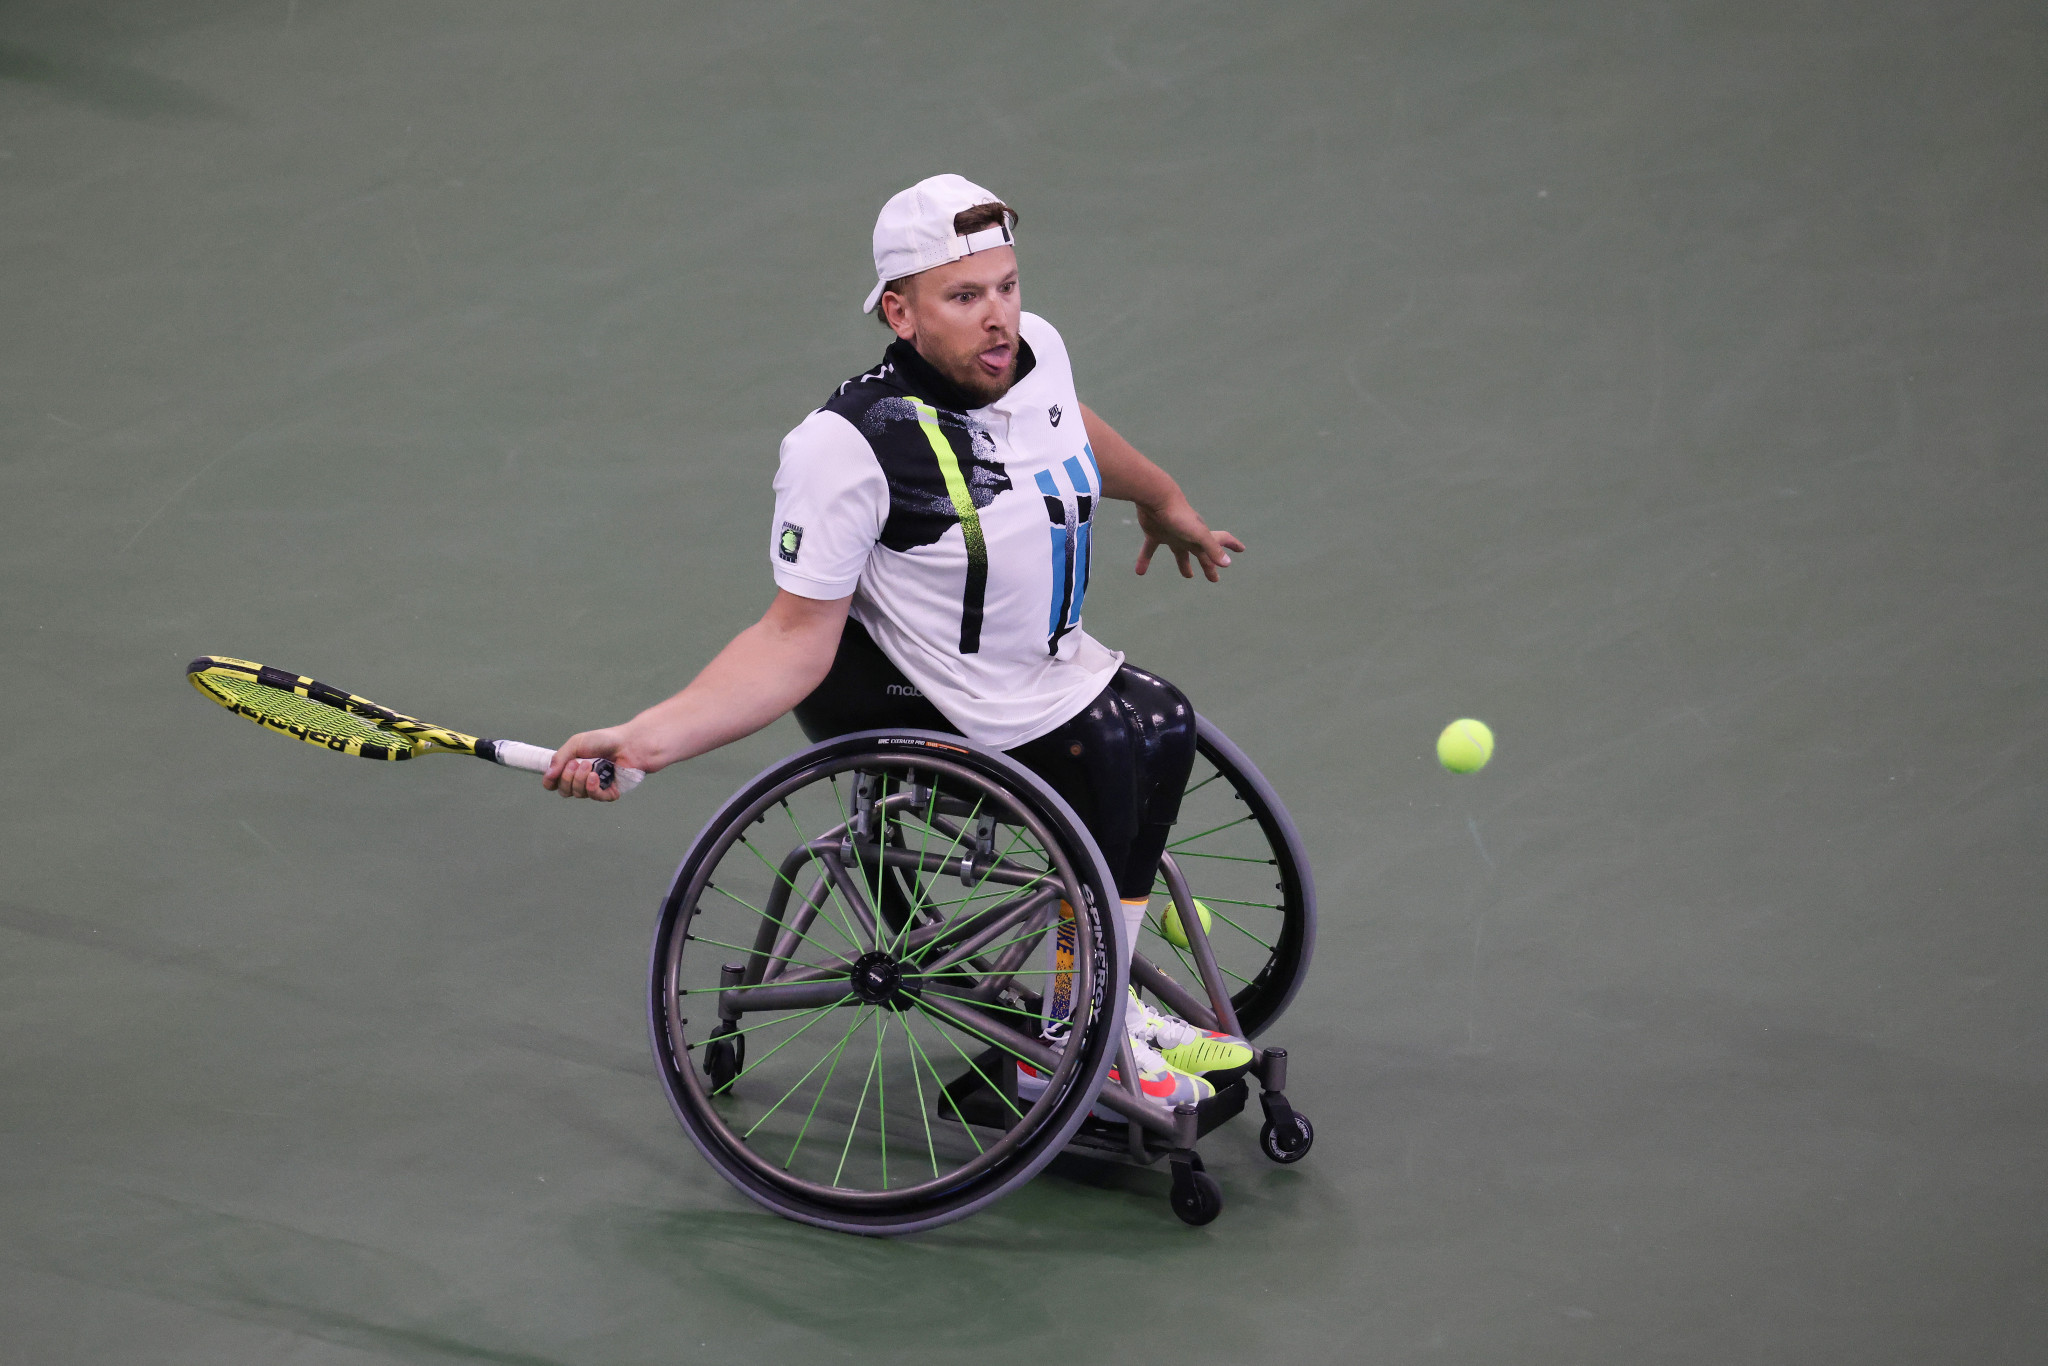 Dylan Alcott has won the Australian Open, French Open, Wimbledon and Paralympic titles already in 2021 ©Getty Images